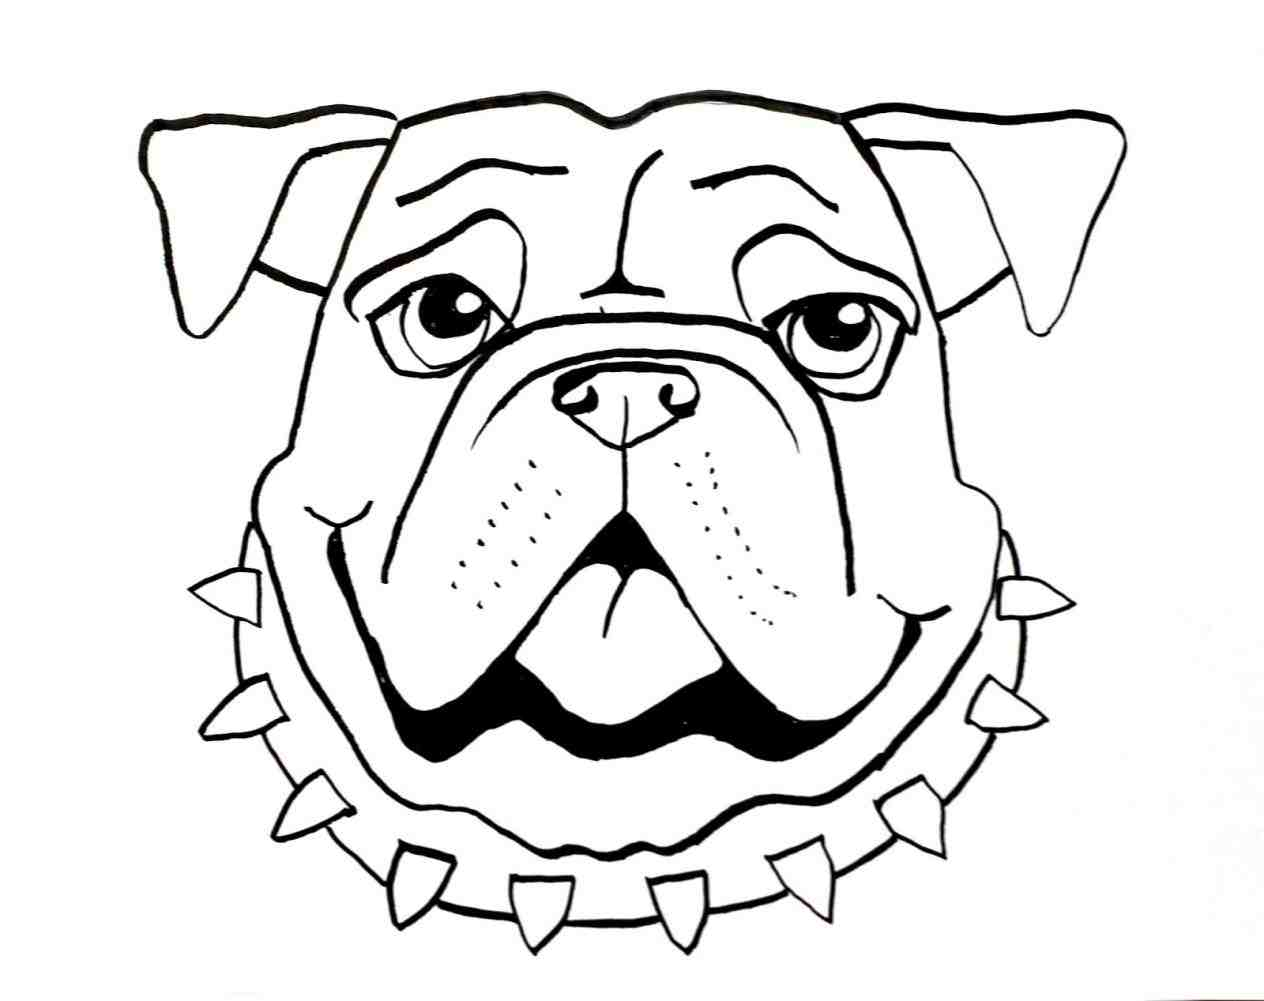 1264x1001 Bulldog Drawing. Bulldog Design. Bulldog Drawing By Erinkejo